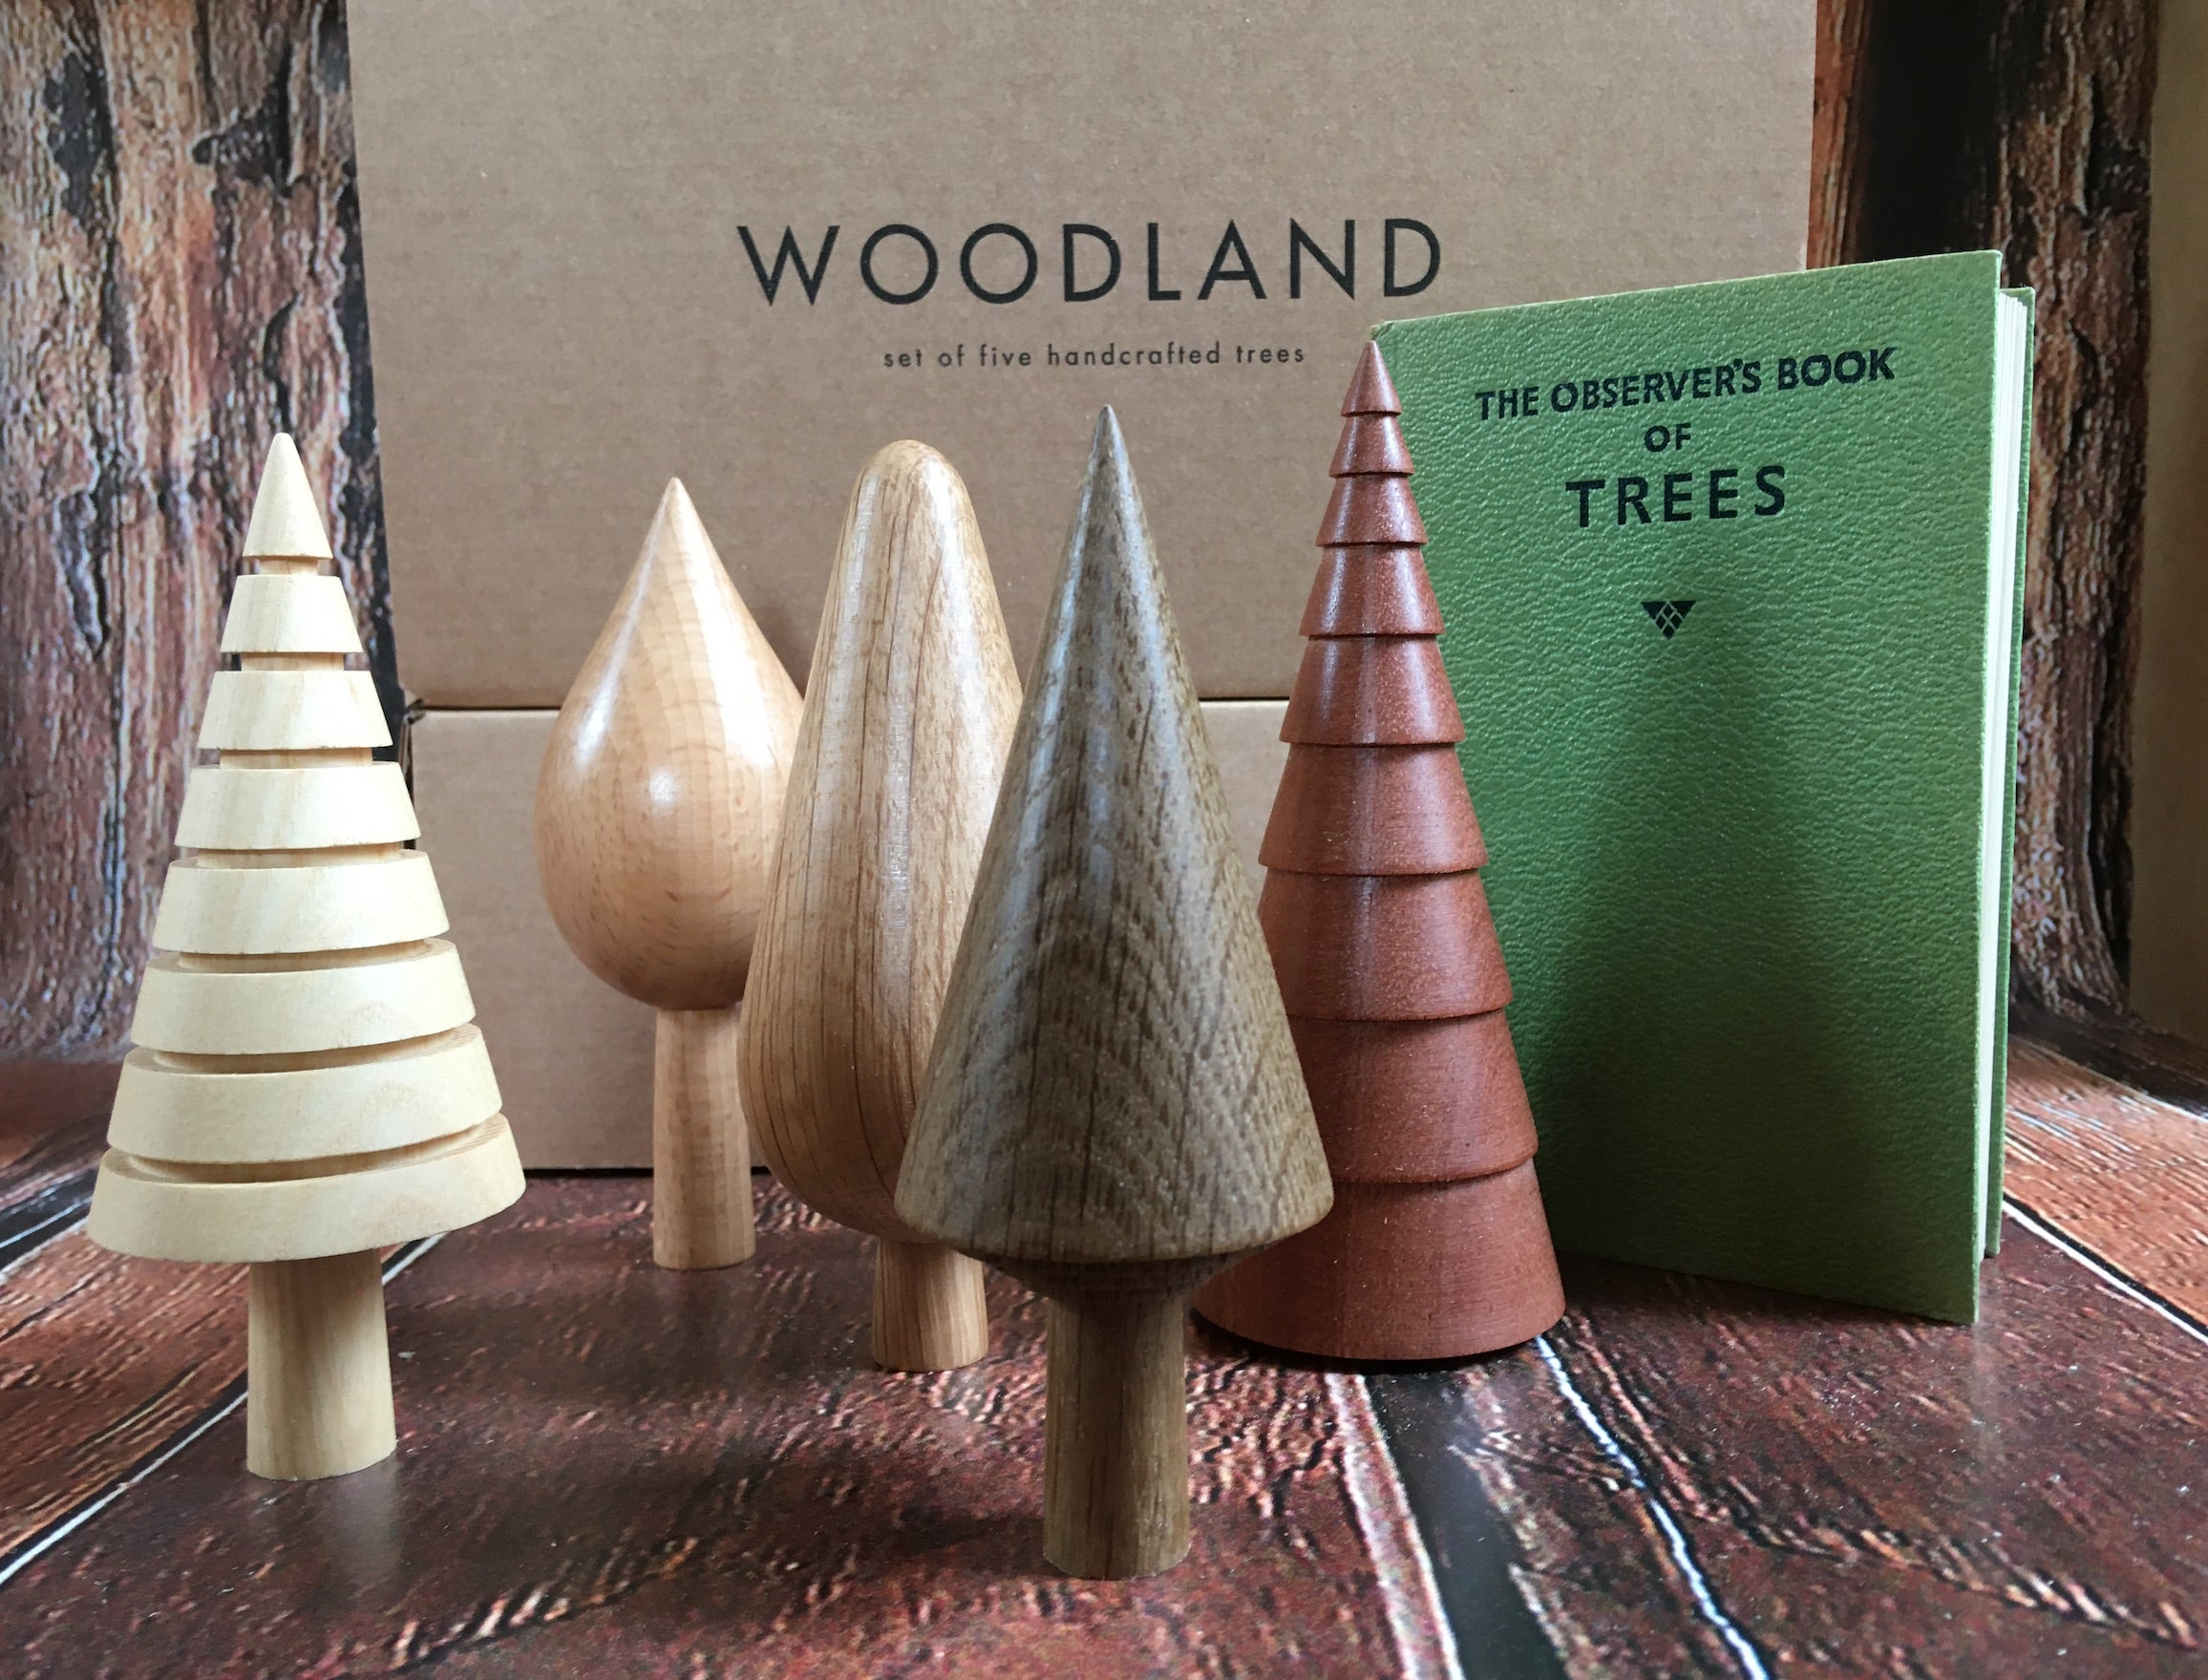 Woodland of Hand Crafted Trees